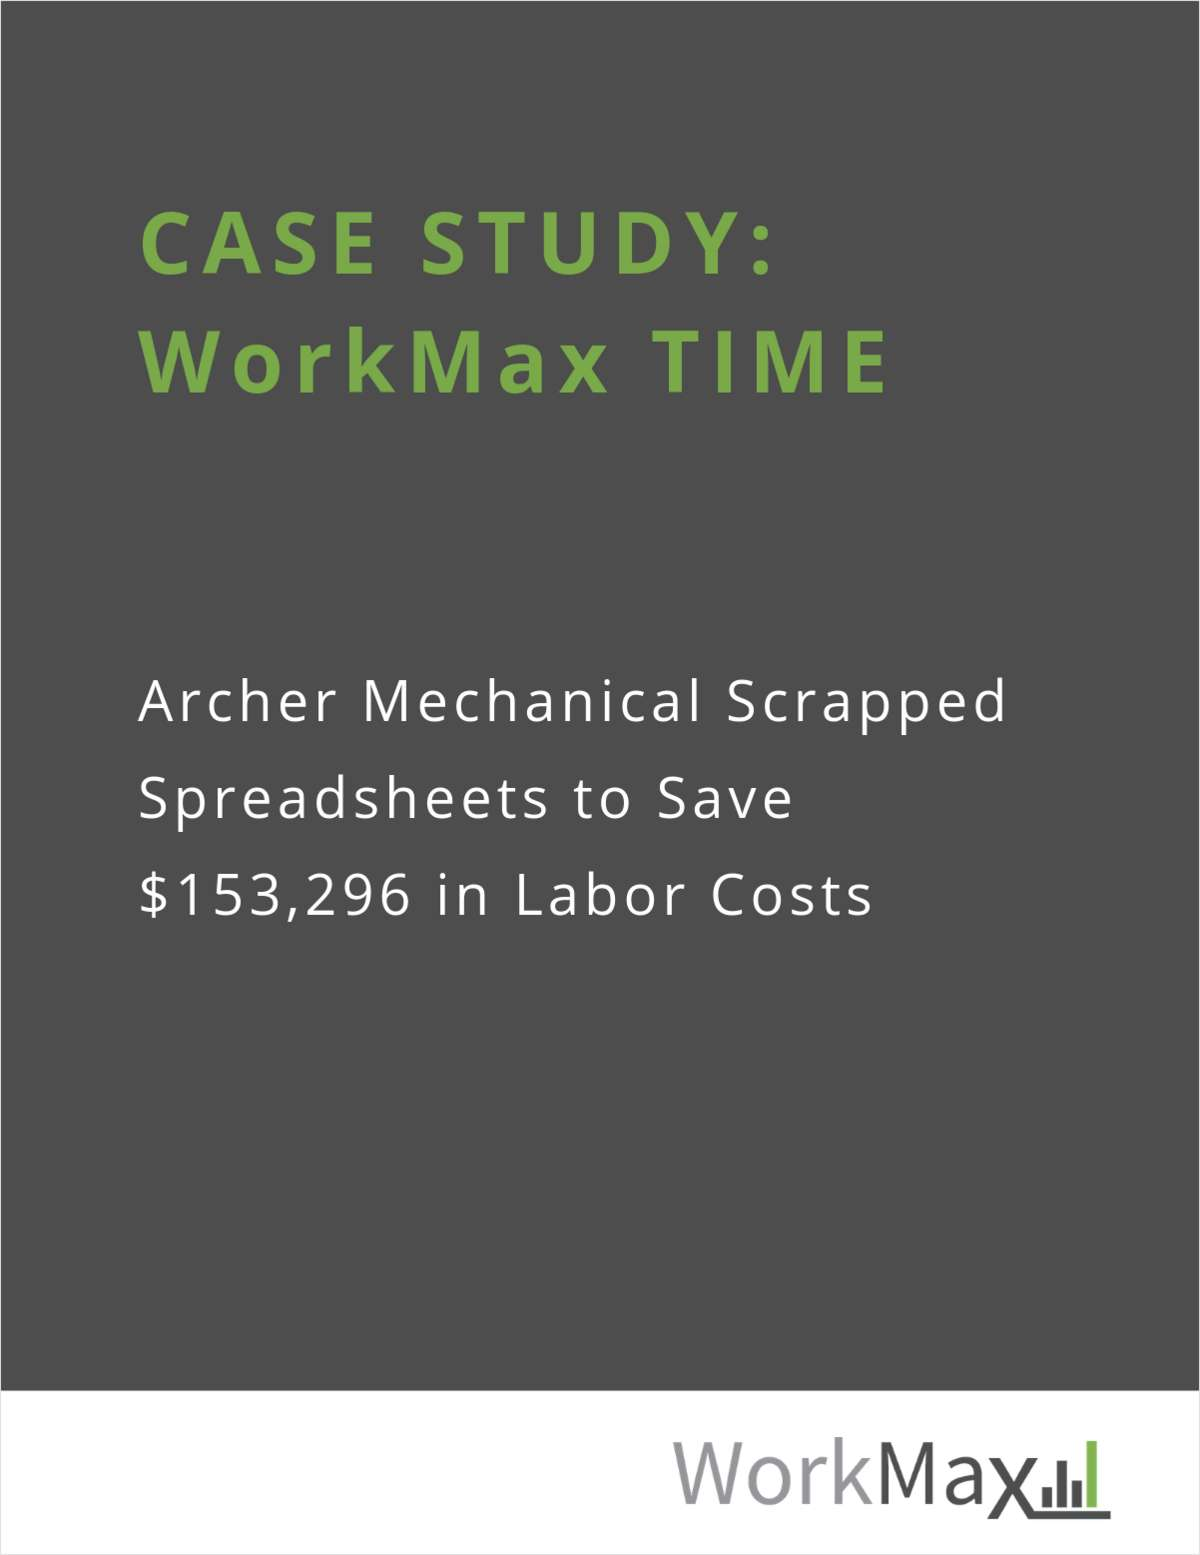 CASE STUDY: Archer Mechanical for WorkMax TIME